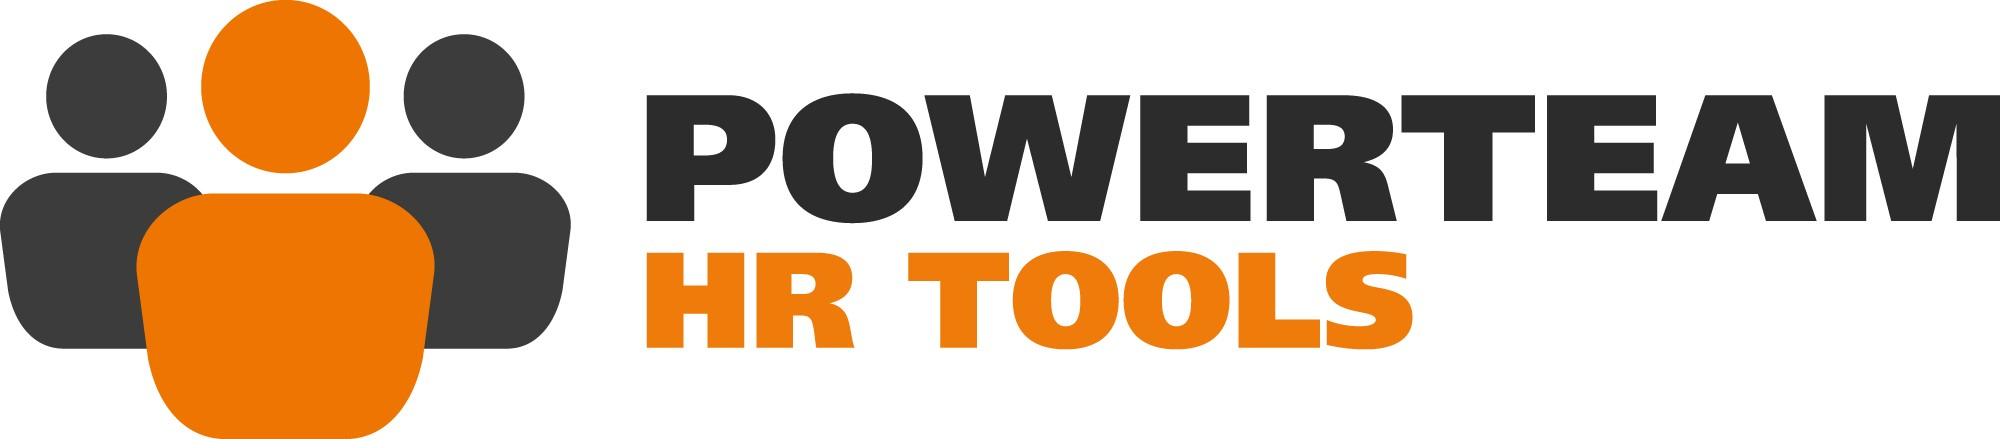 Powerteam HR Tools